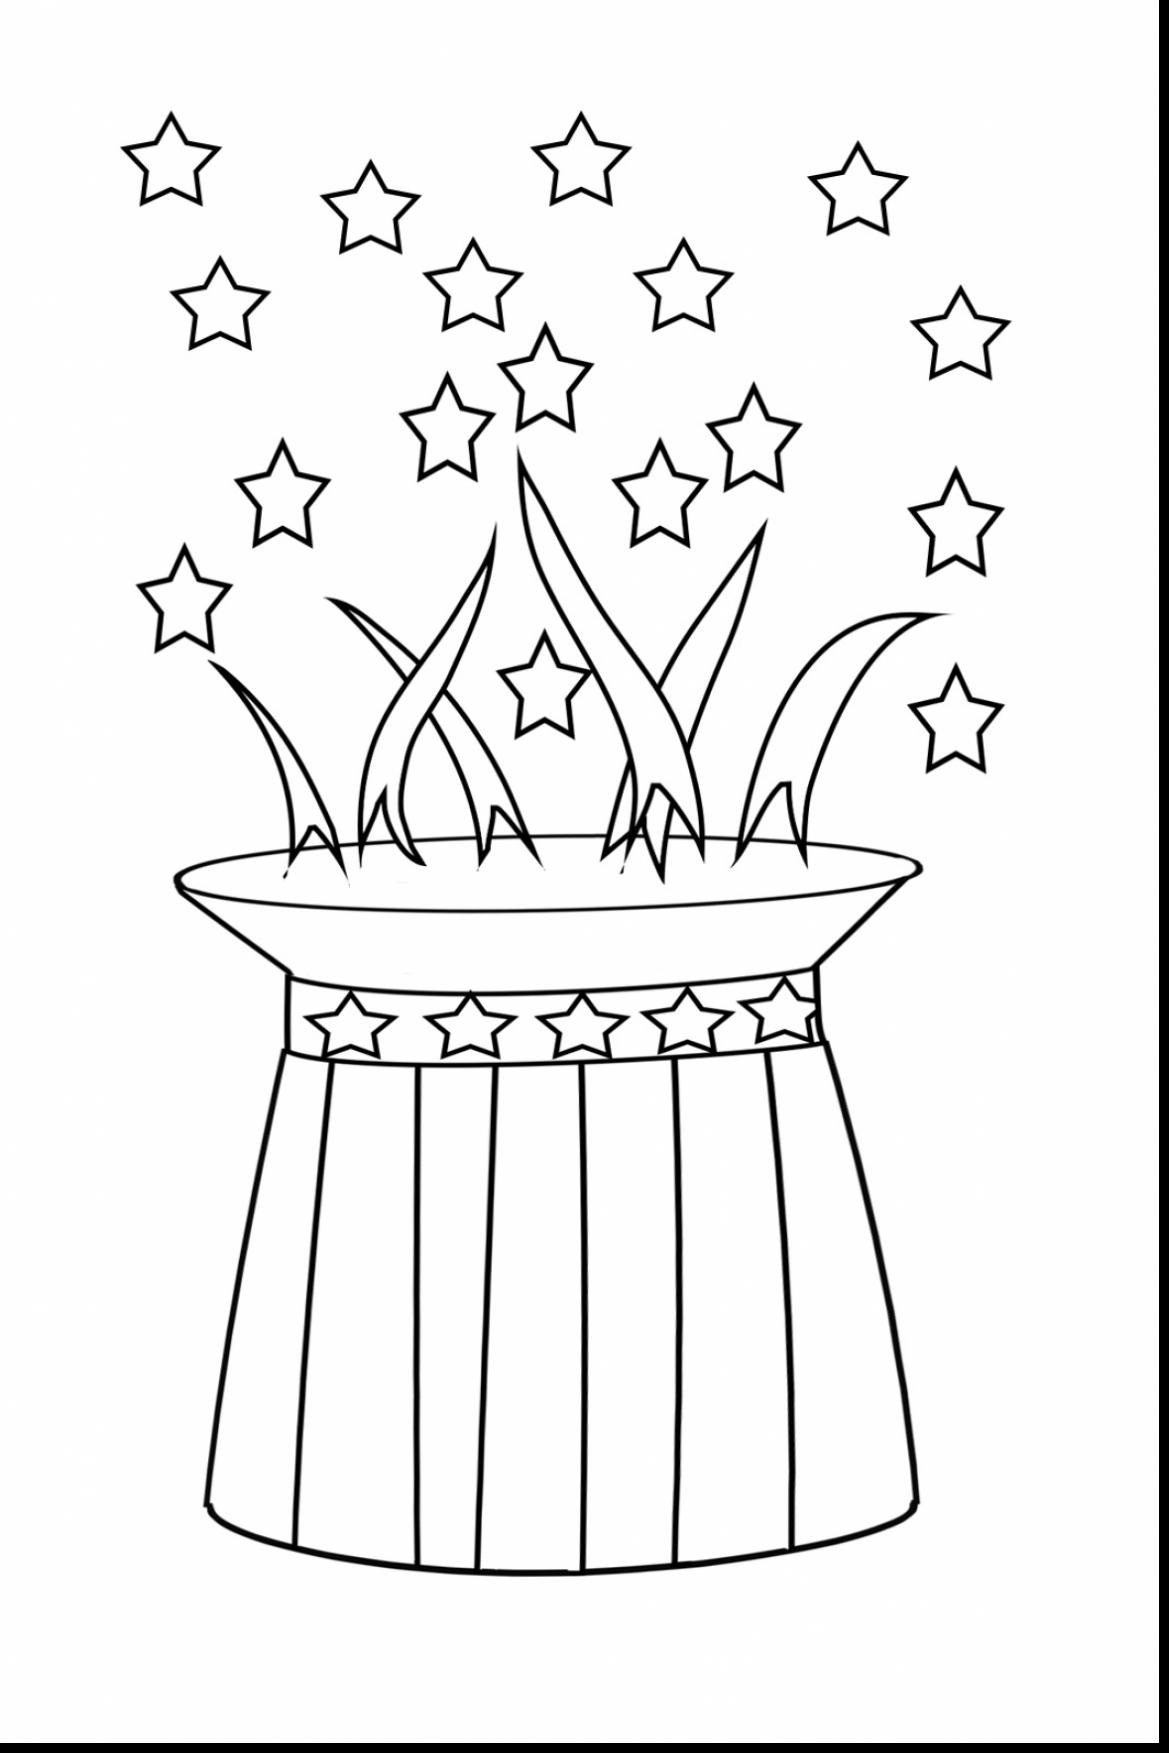 1169x1753 Fourth Of July Fireworks Coloring Pages Free Draw To Color